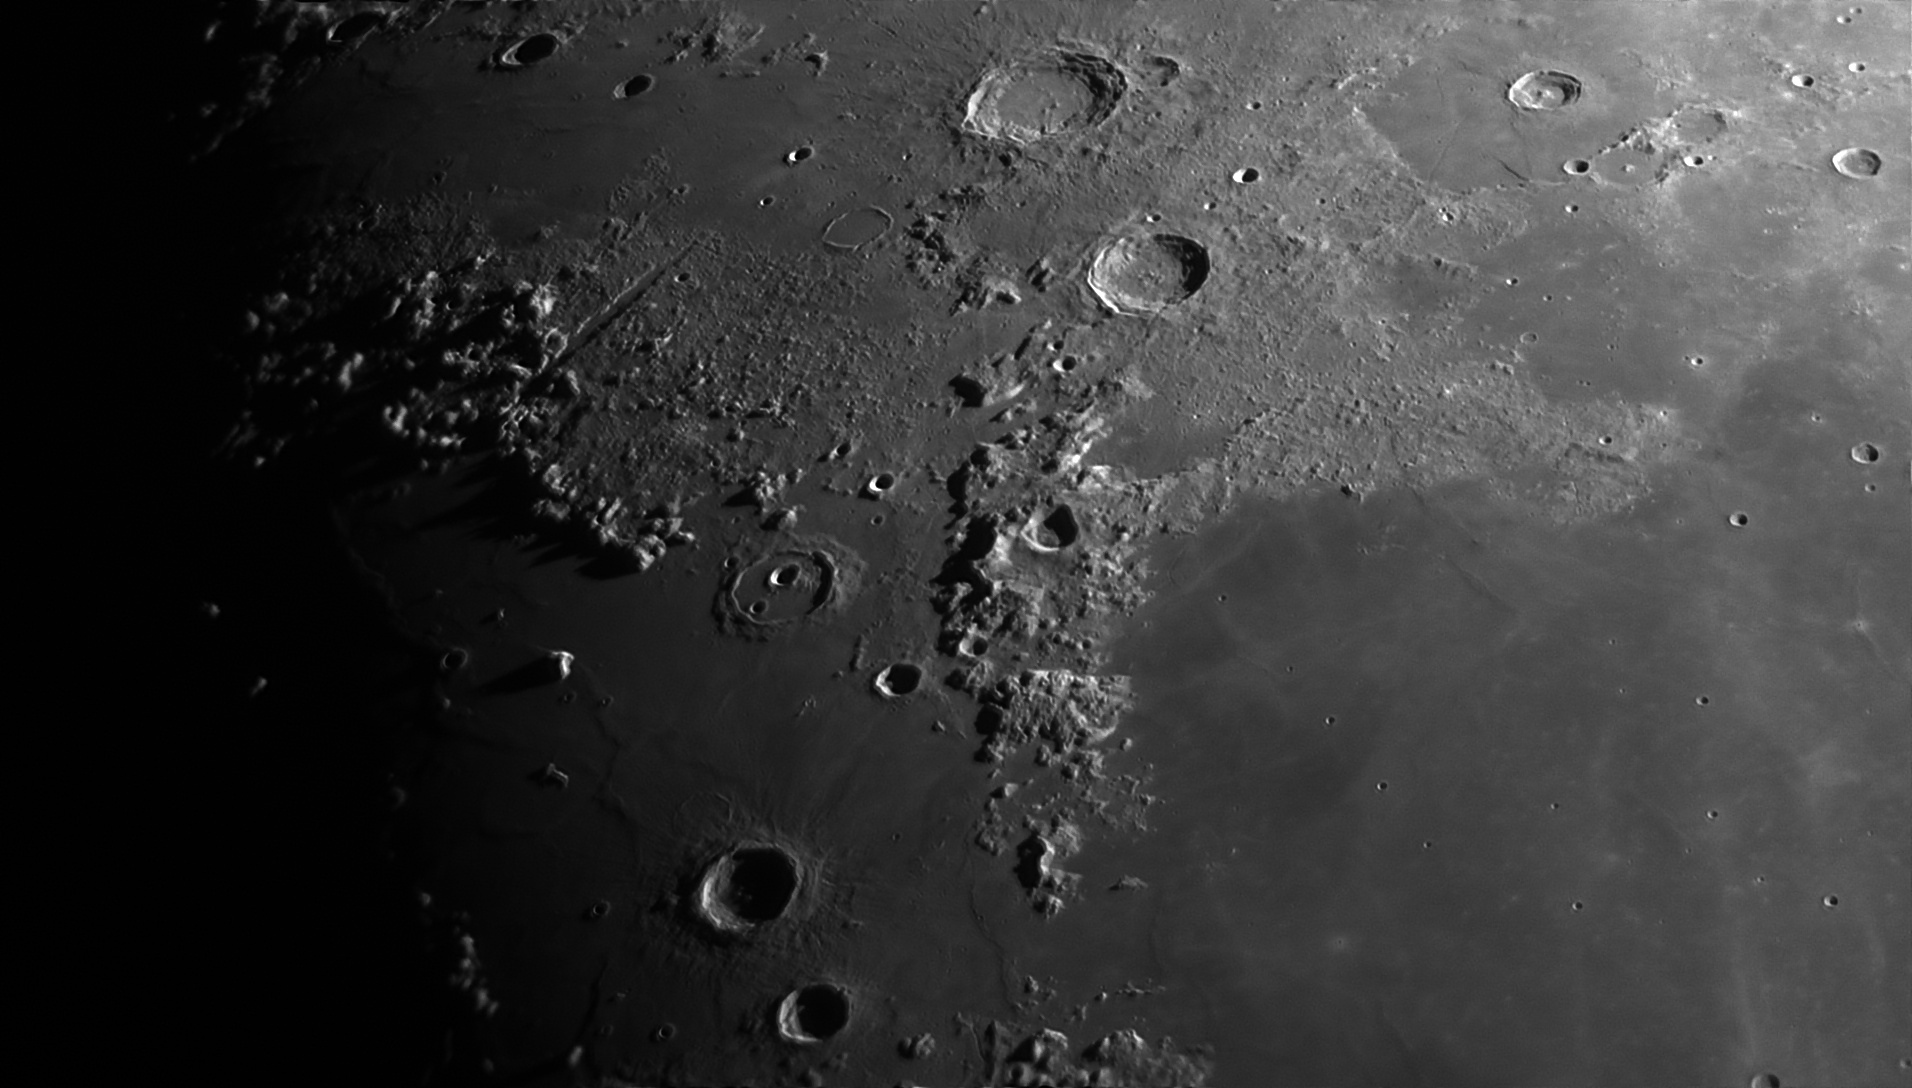 5d00537e16629_Moon_225129_100619_ZWOASI290MM_Rouge_23A_AS_P30_lapl4_ap822ass.jpg.fb5c3adaed4660a7411ab297559269ce.jpg